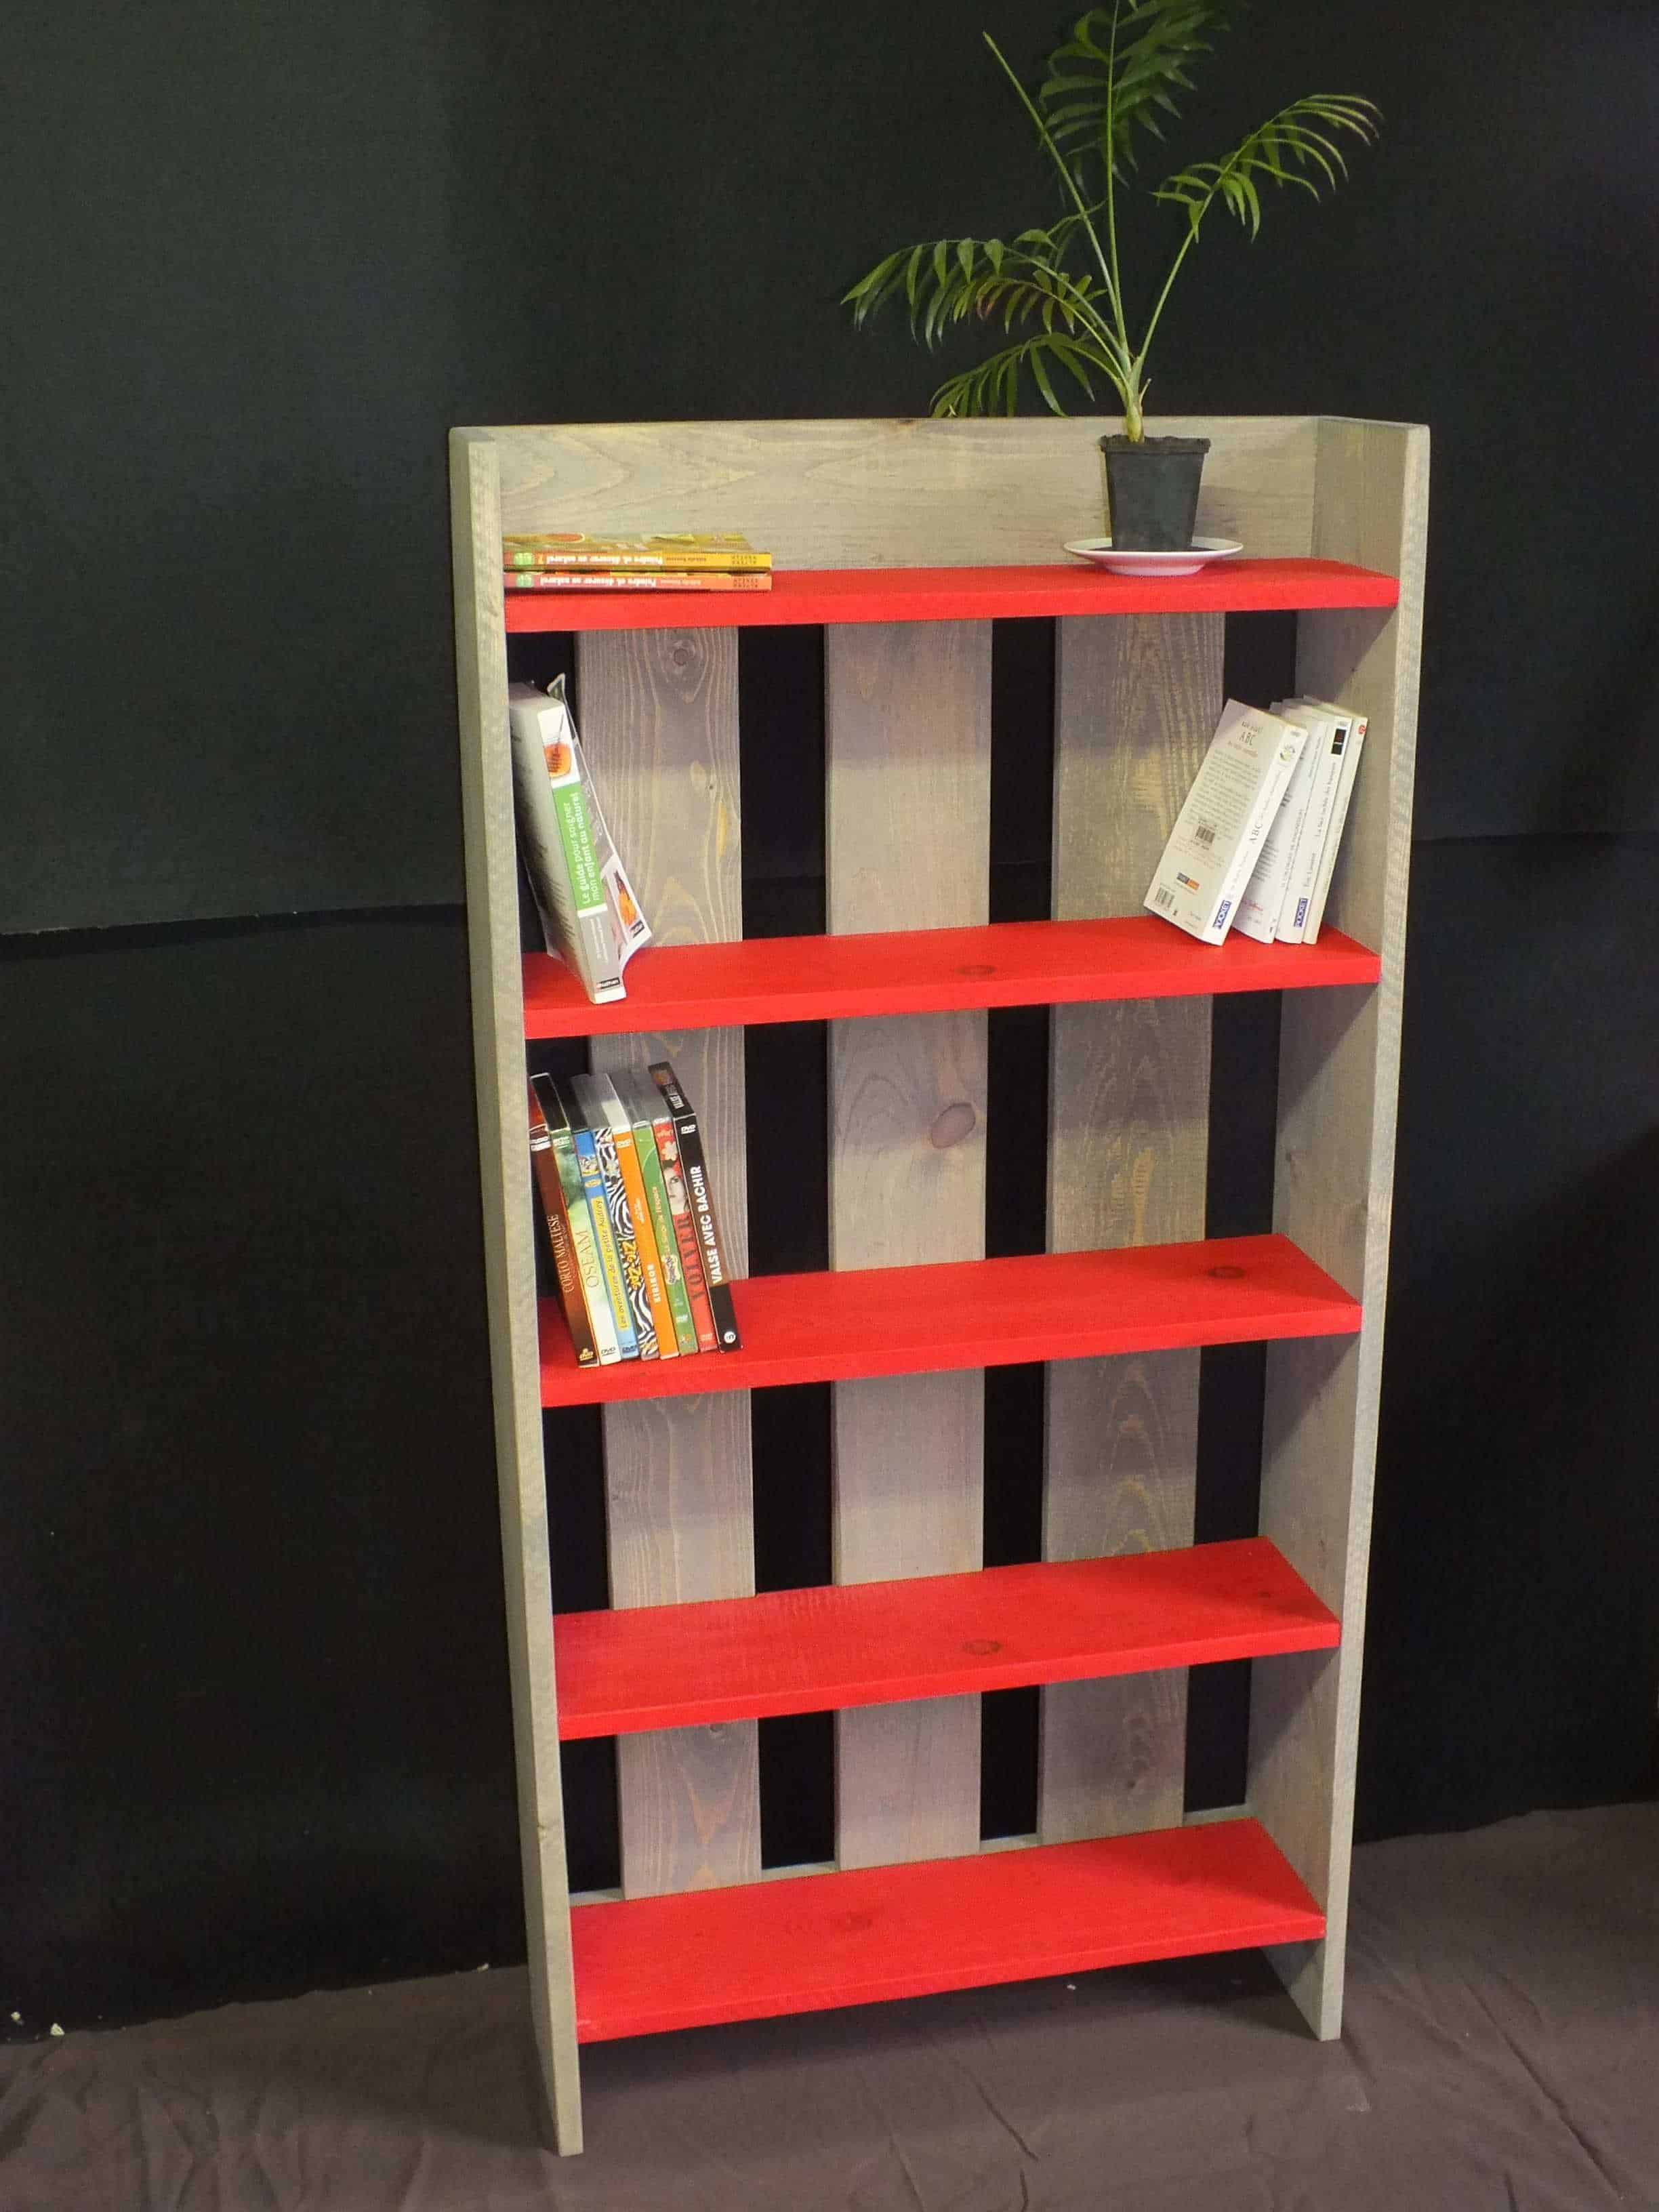 Wooden pallet shelf biblioth que etag re en bois de for Peindre etagere bois